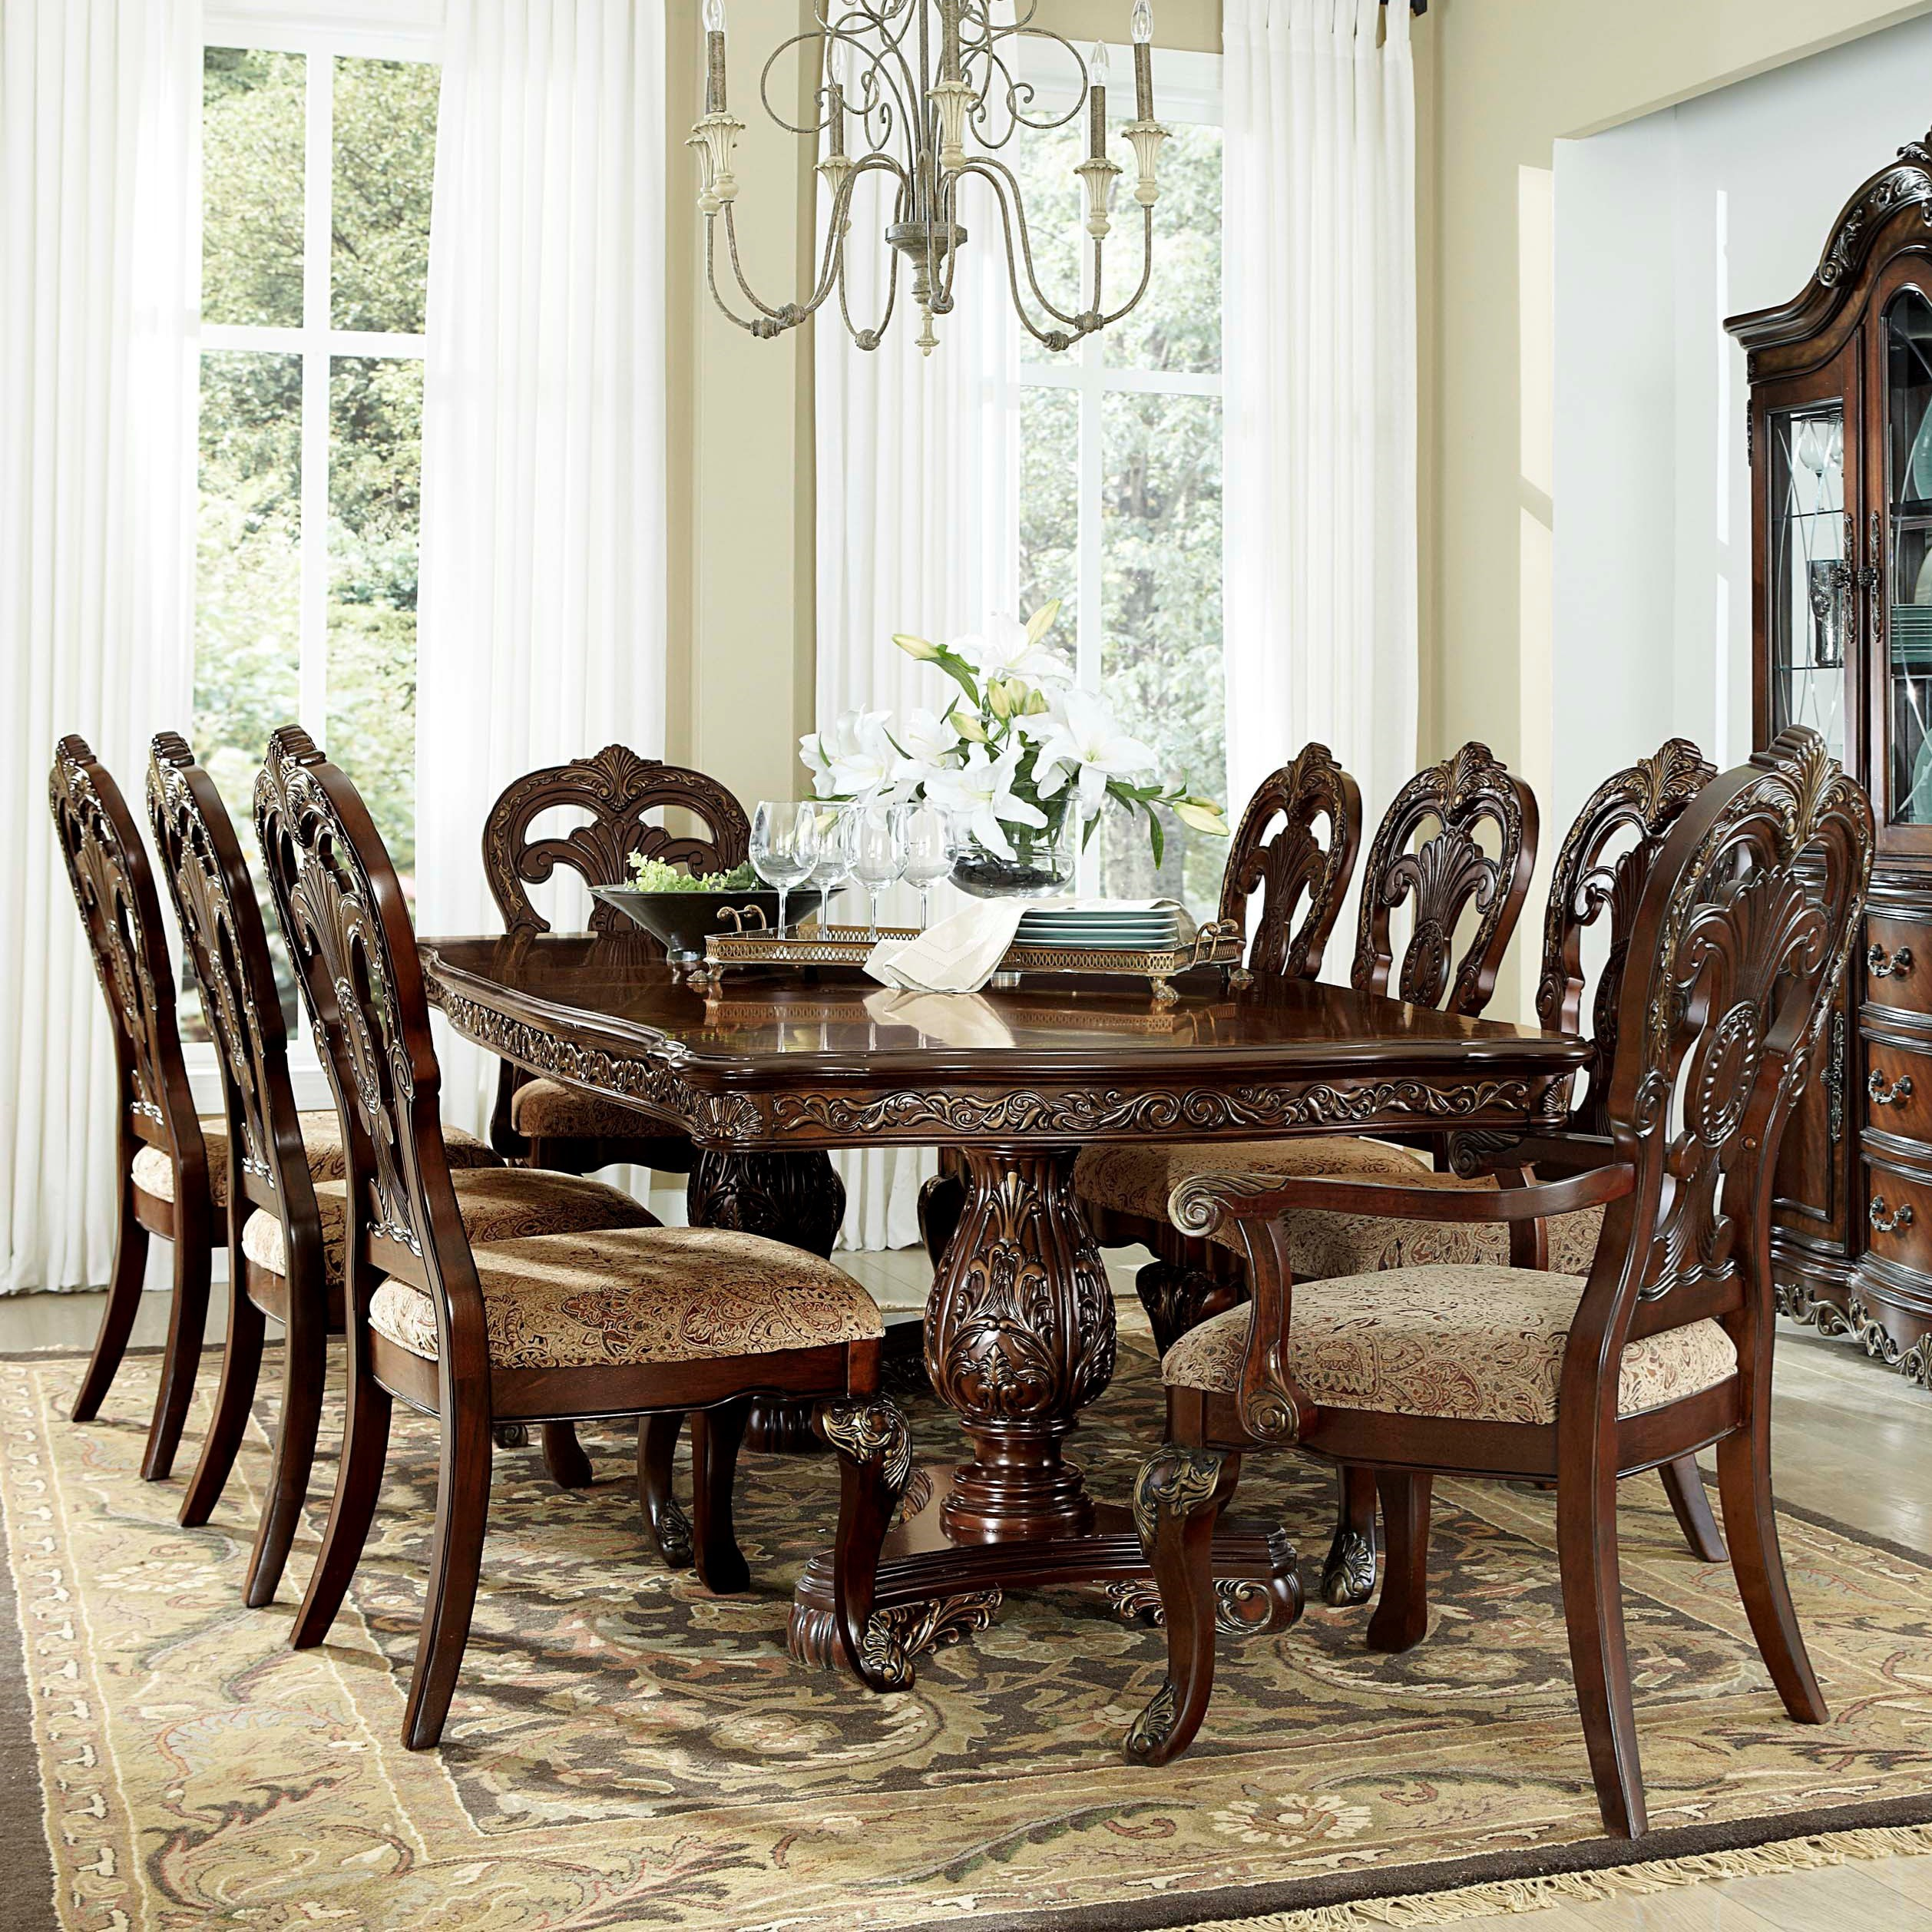 Homelegance Deryn Park Traditional Dining Table And Chair Set With Elegant Detailing Wayside